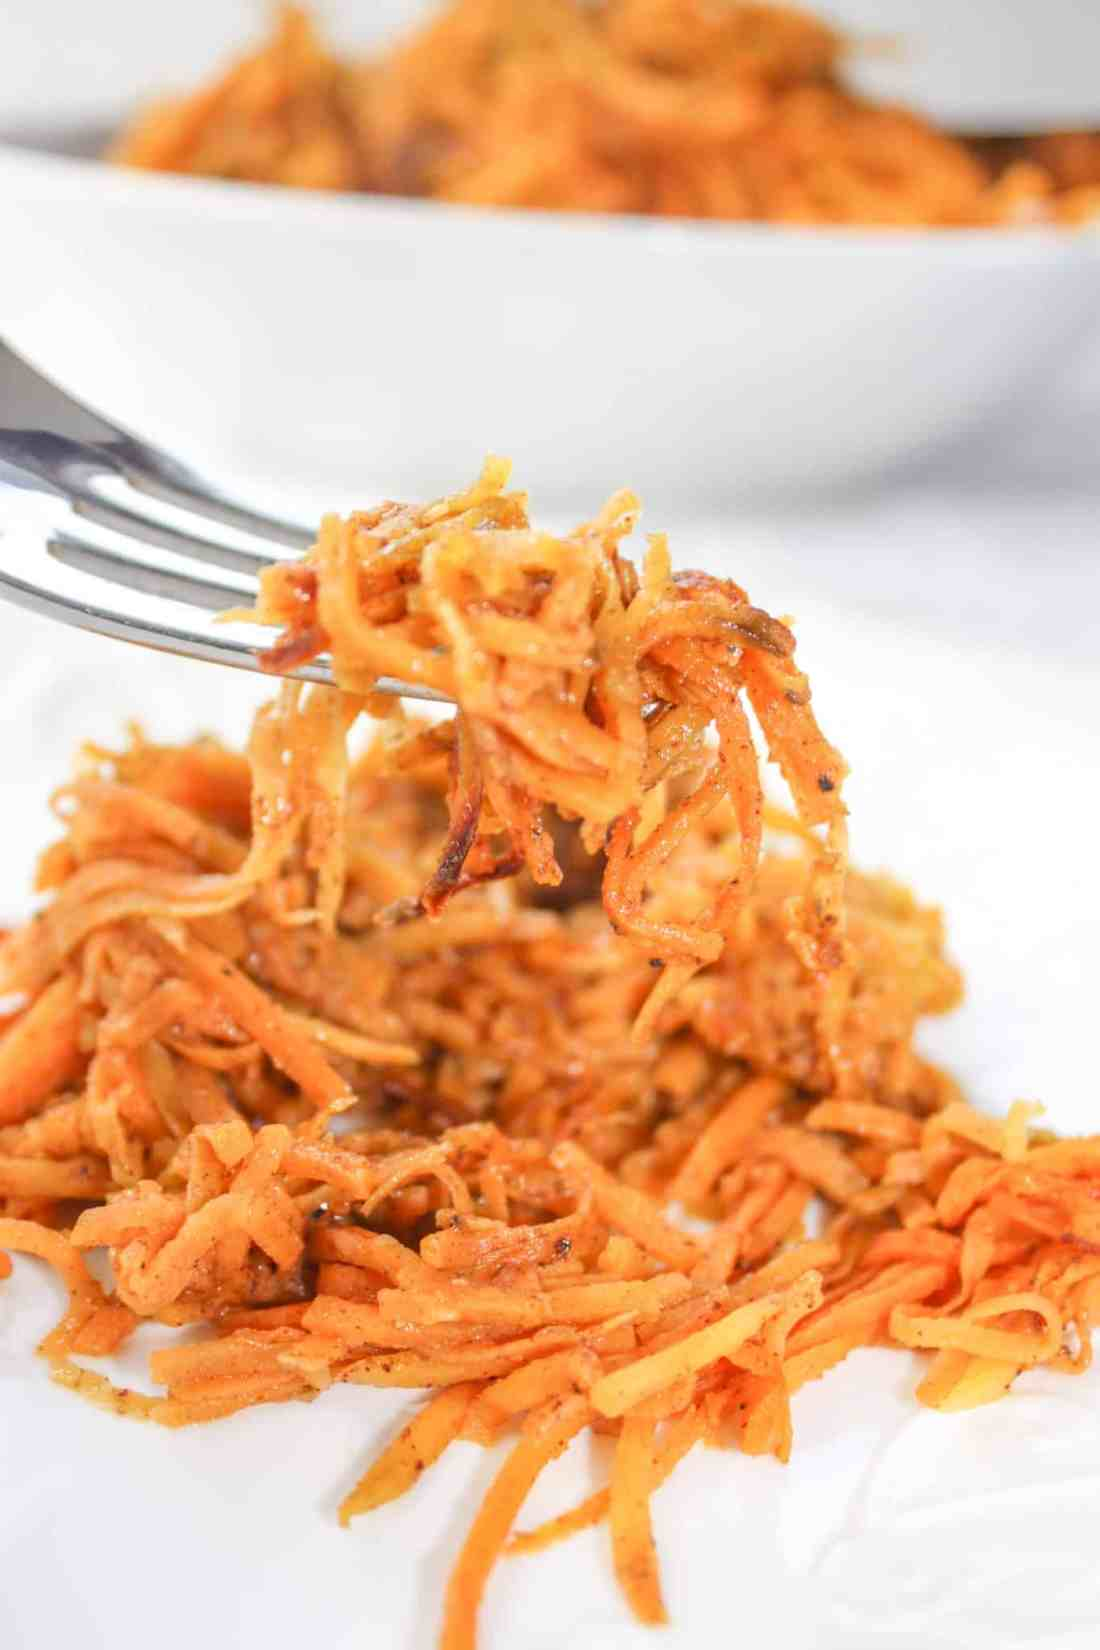 Hot Sweet Potato Slaw is a flavourful side dish that will complement any meal.  Add it to your Thanksgiving menu or it is easy enough to prepare any night of the week.